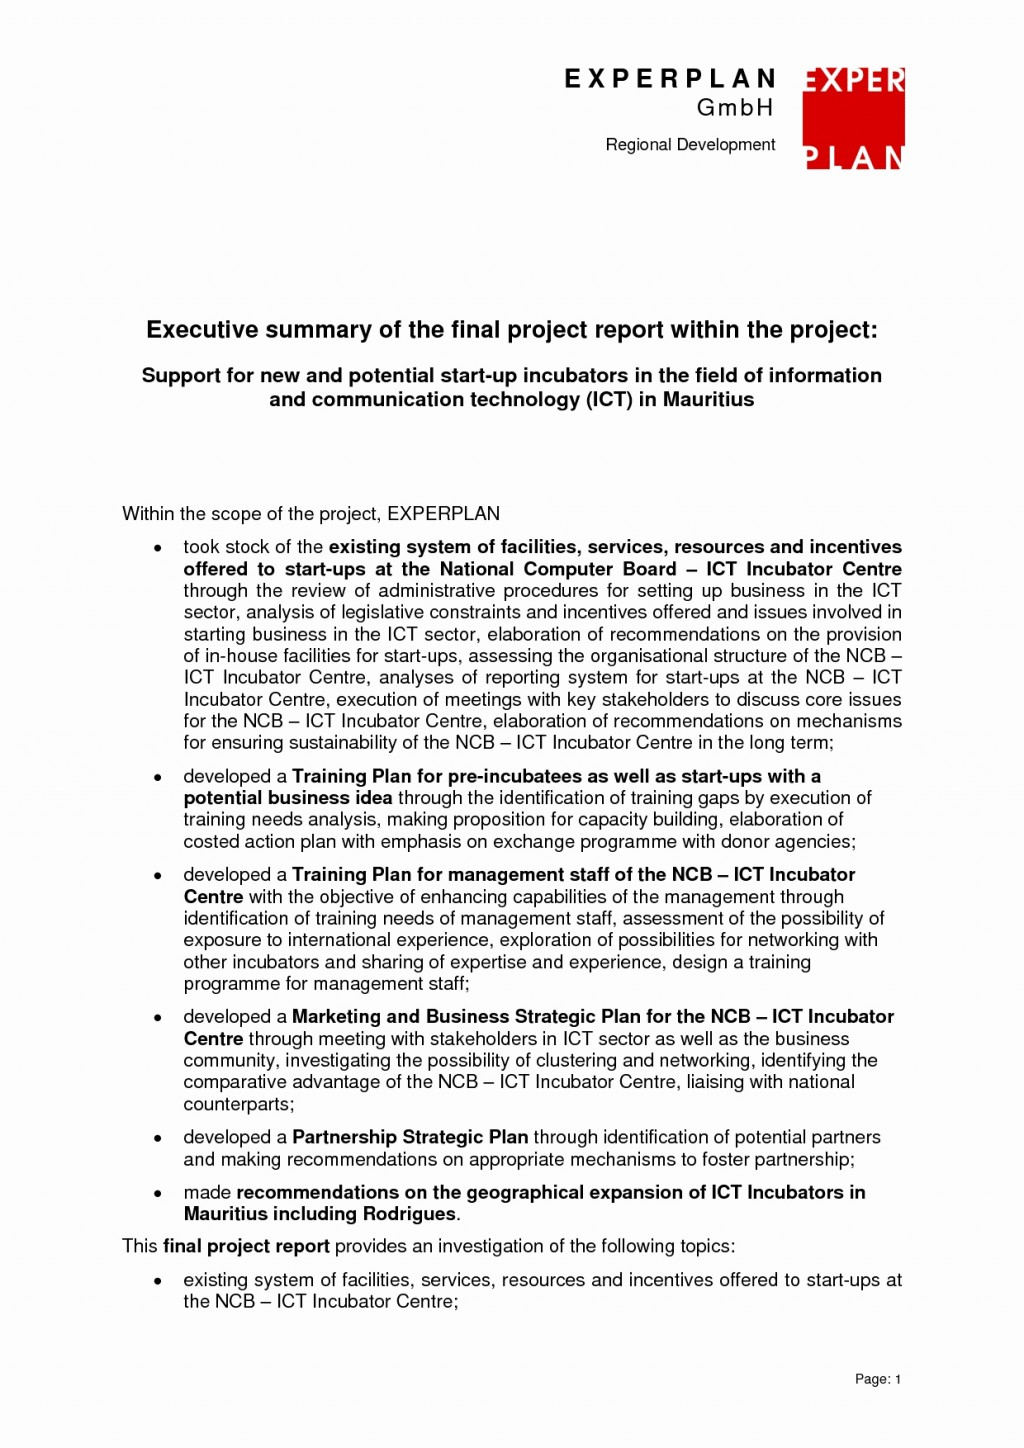 014 Executive Summary Research Paper Example 20project Management Template Plan Luxury Experience Unforgettable Large